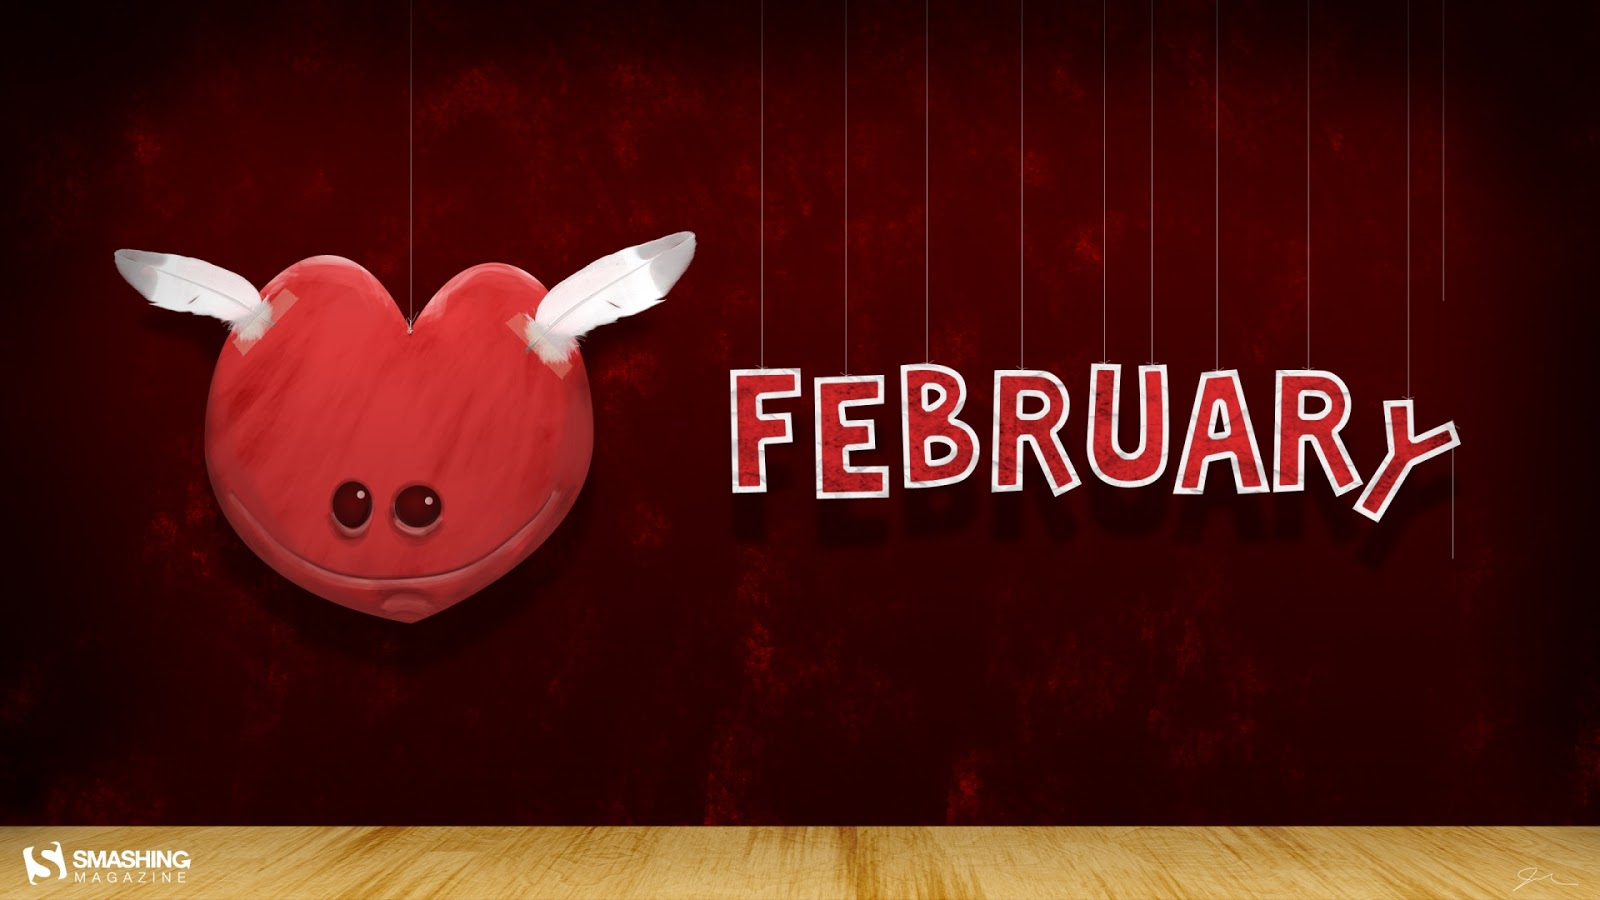 February Month of Love 1920x1080 Wallpaper